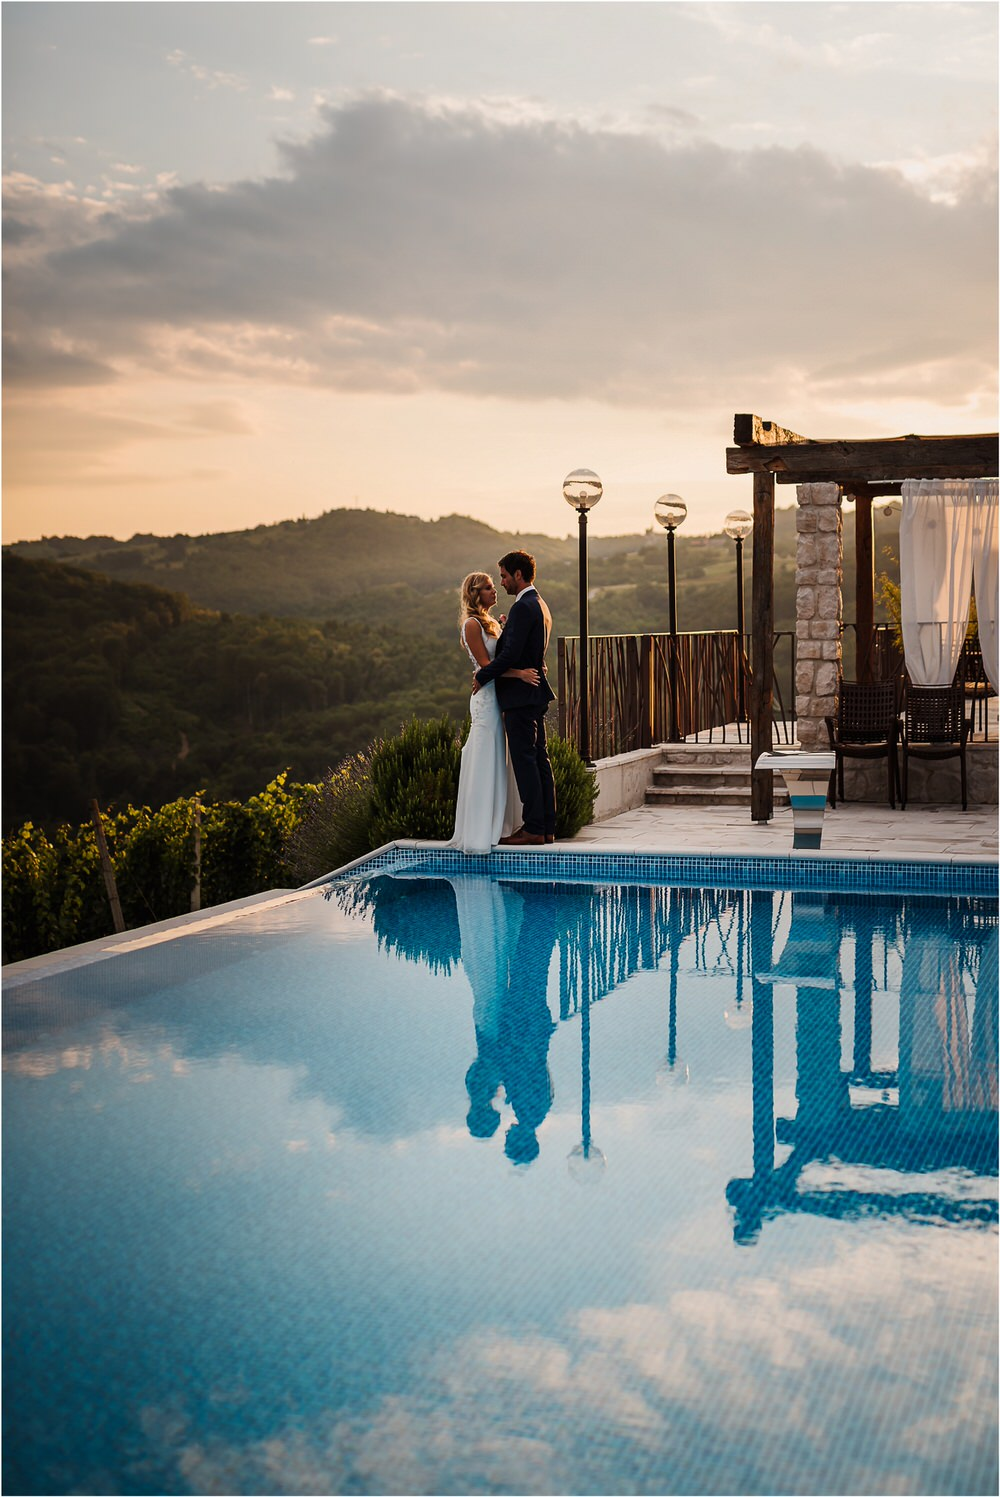 destination wedding italy greece ireland france uk photographer poroka poročni fotograf poročno fotografiranje gredič tri lučke bled tuscany 0149.jpg